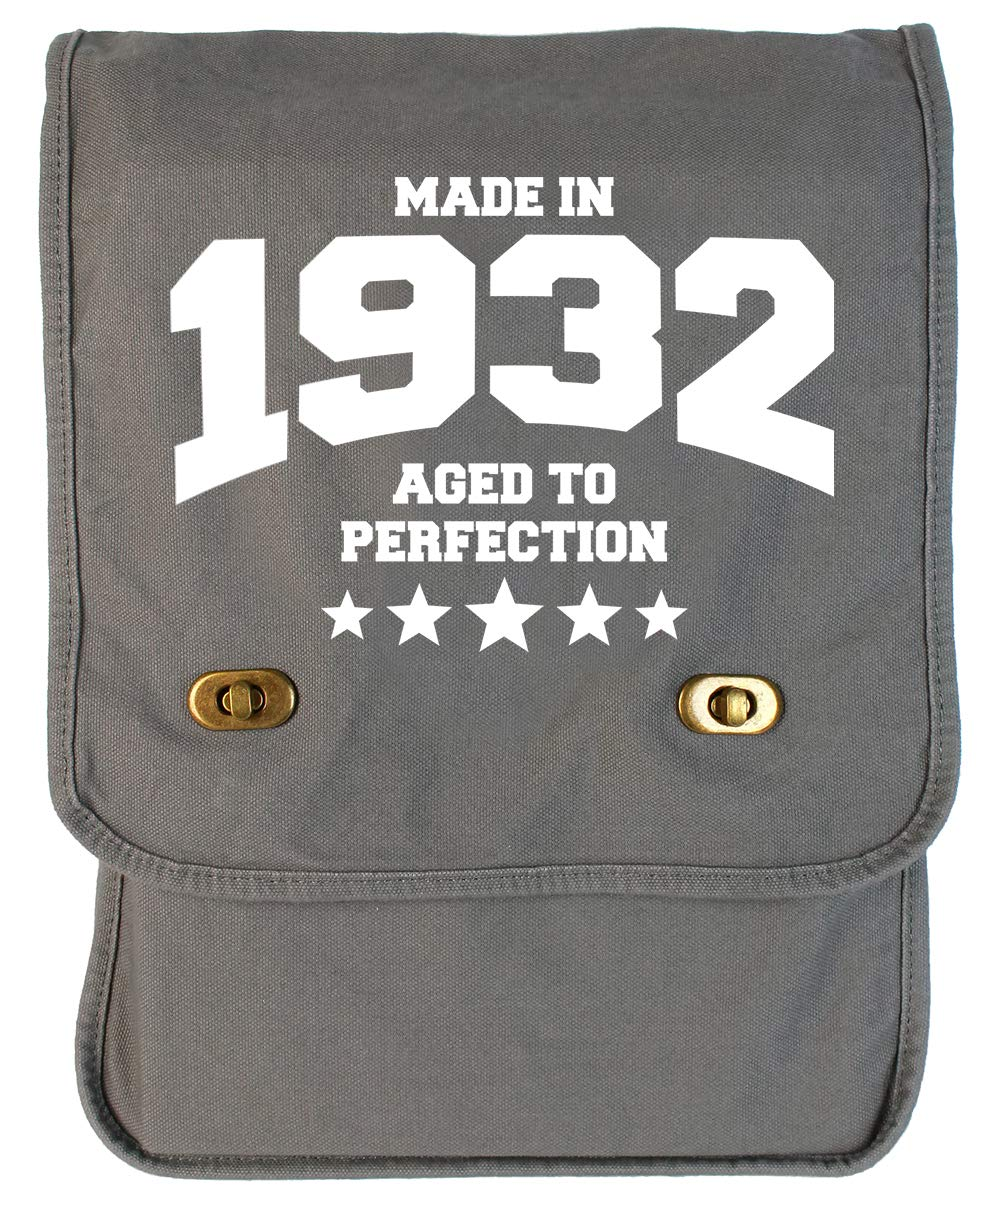 Tenacitee Athletic Aged to Perfection 1932 Grey Brushed Canvas Messenger Bag